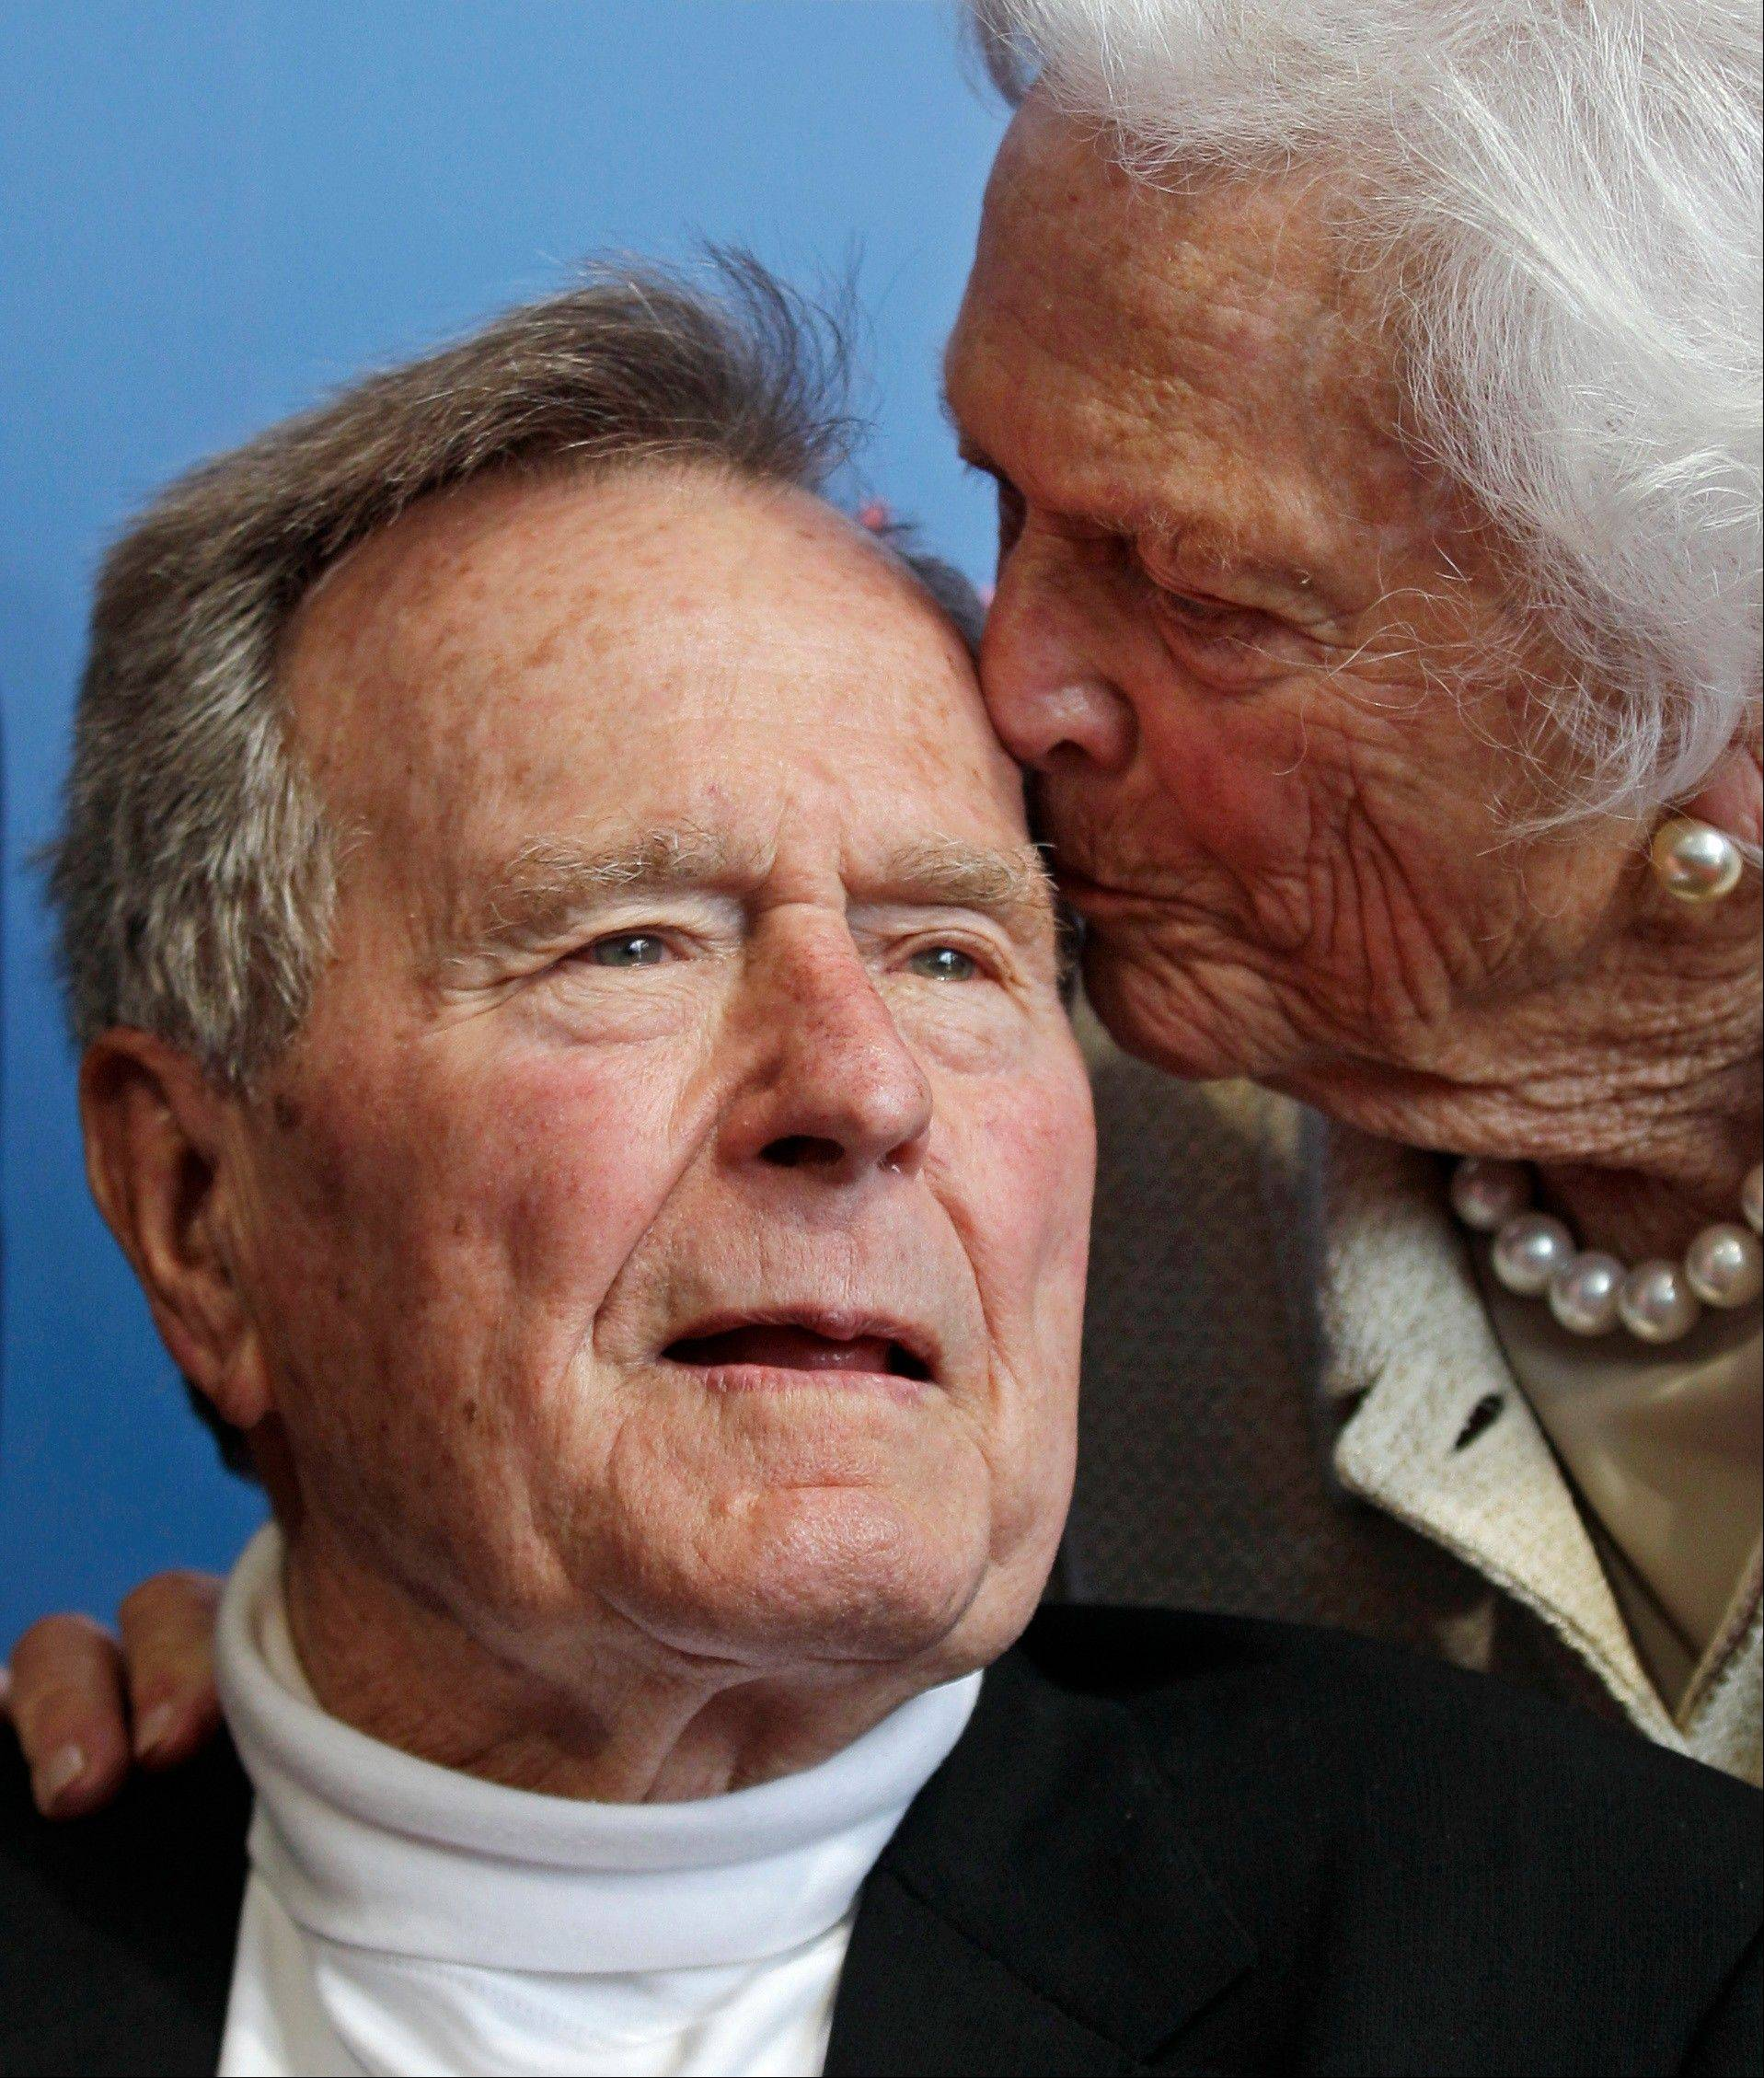 Former President George H.W. Bush has been hospitalized for about a week in Houston for treatment of a lingering cough. Bush�s chief of staff, Jean Becker, says the 88-year-old former president is being treated for bronchitis at Houston�s Methodist Hospital and is expected to be released by the weekend. He was admitted Friday.